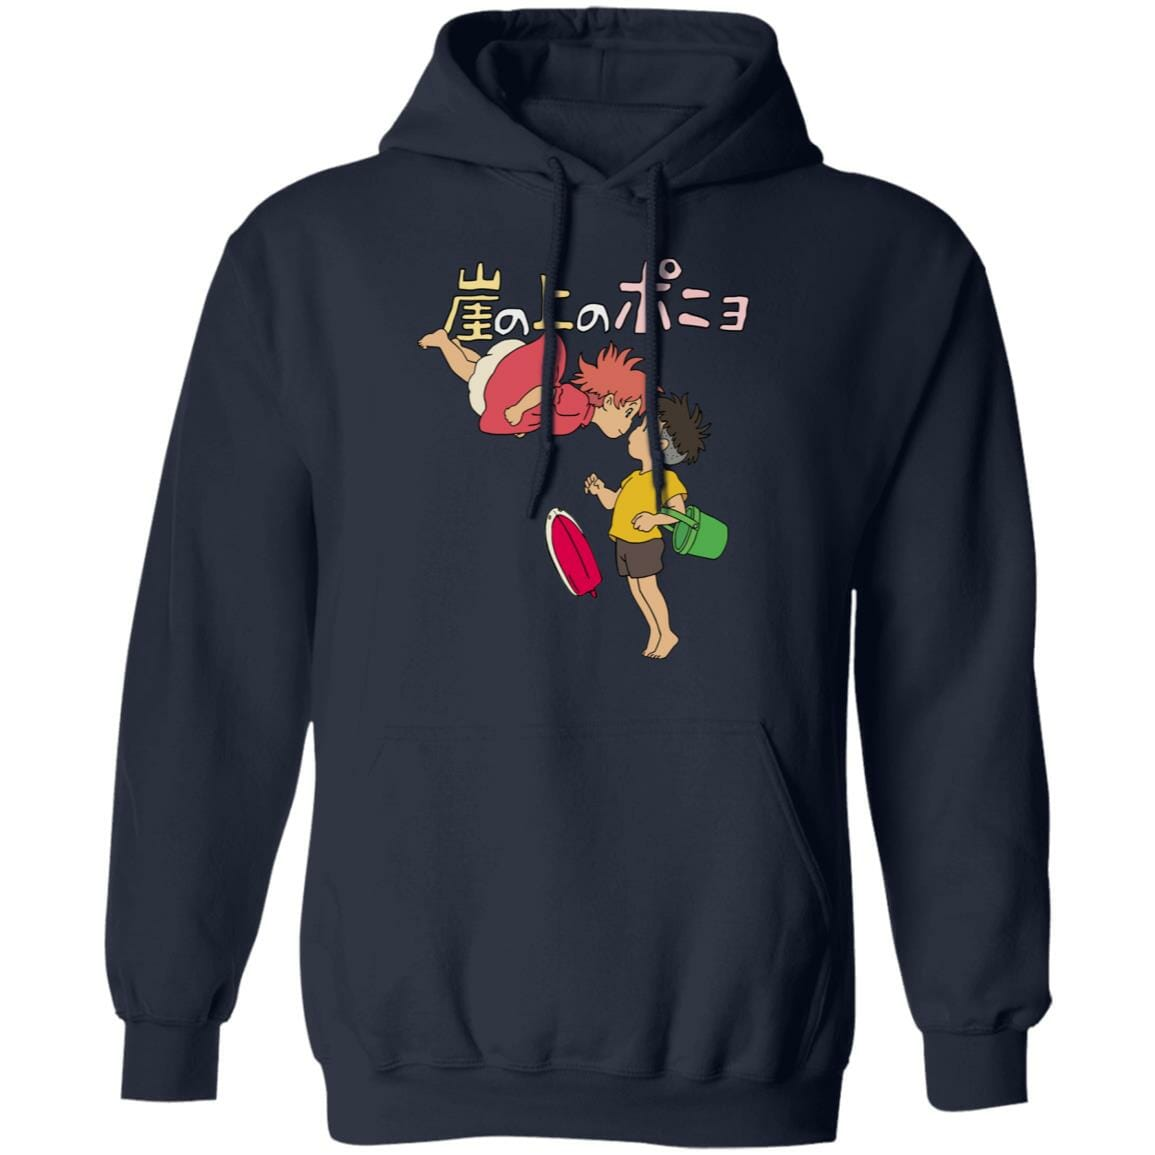 Ponyo on the Cliff by the Sea Hoodie Unisex